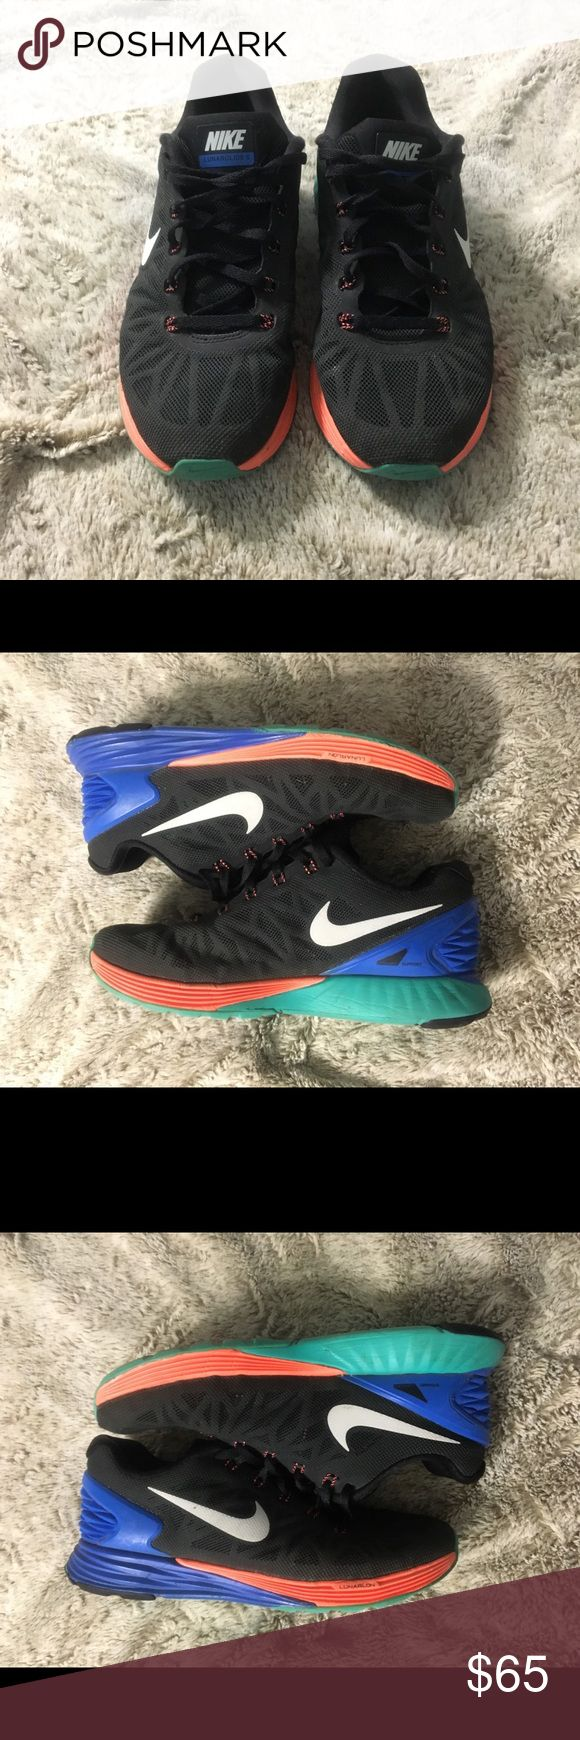 Nike Lunarglide 6 Women's - Sz 7 Excellent Condition Minor signs of wear on sides of sole Smoke-Free Home Shoes Athletic Shoes